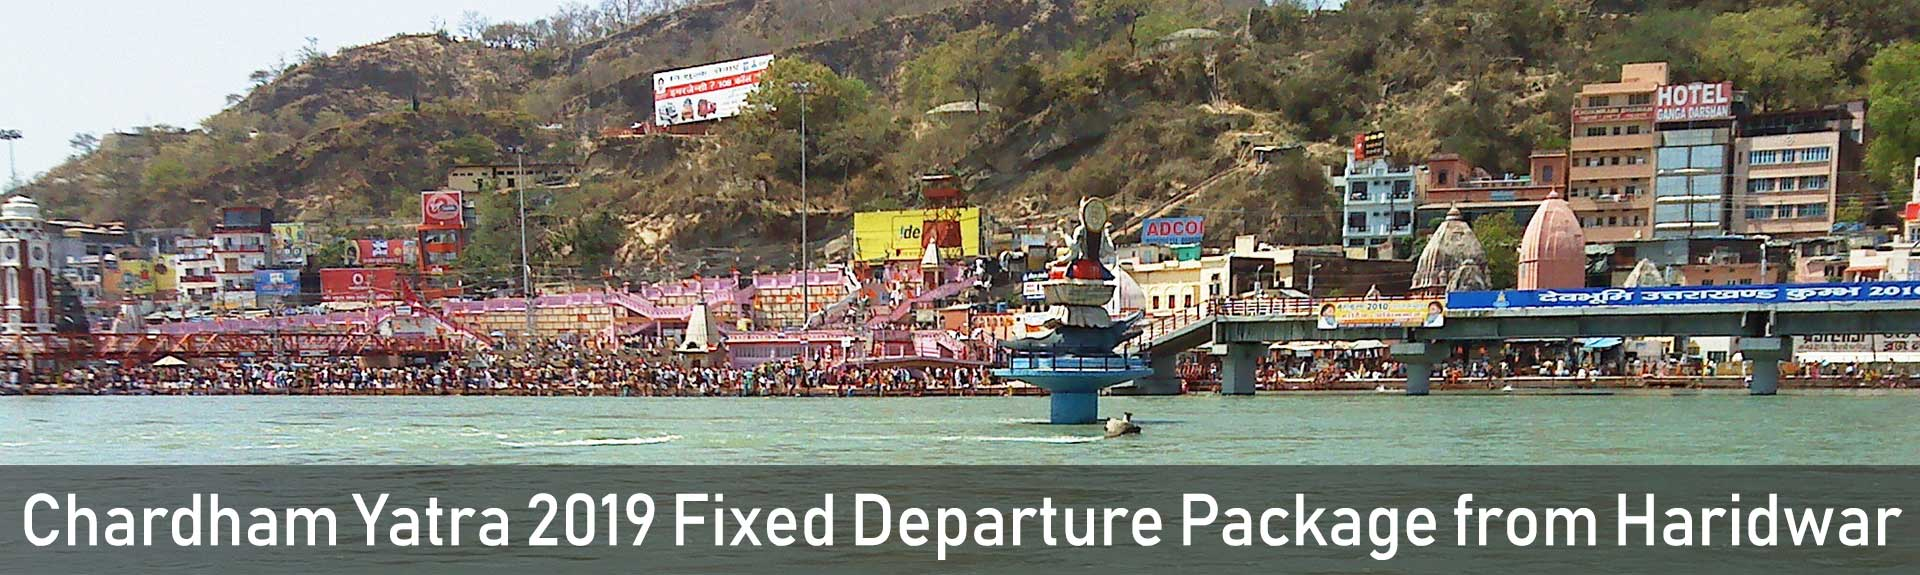 Chardham Yatra Fixed Departure Package from Haridwar